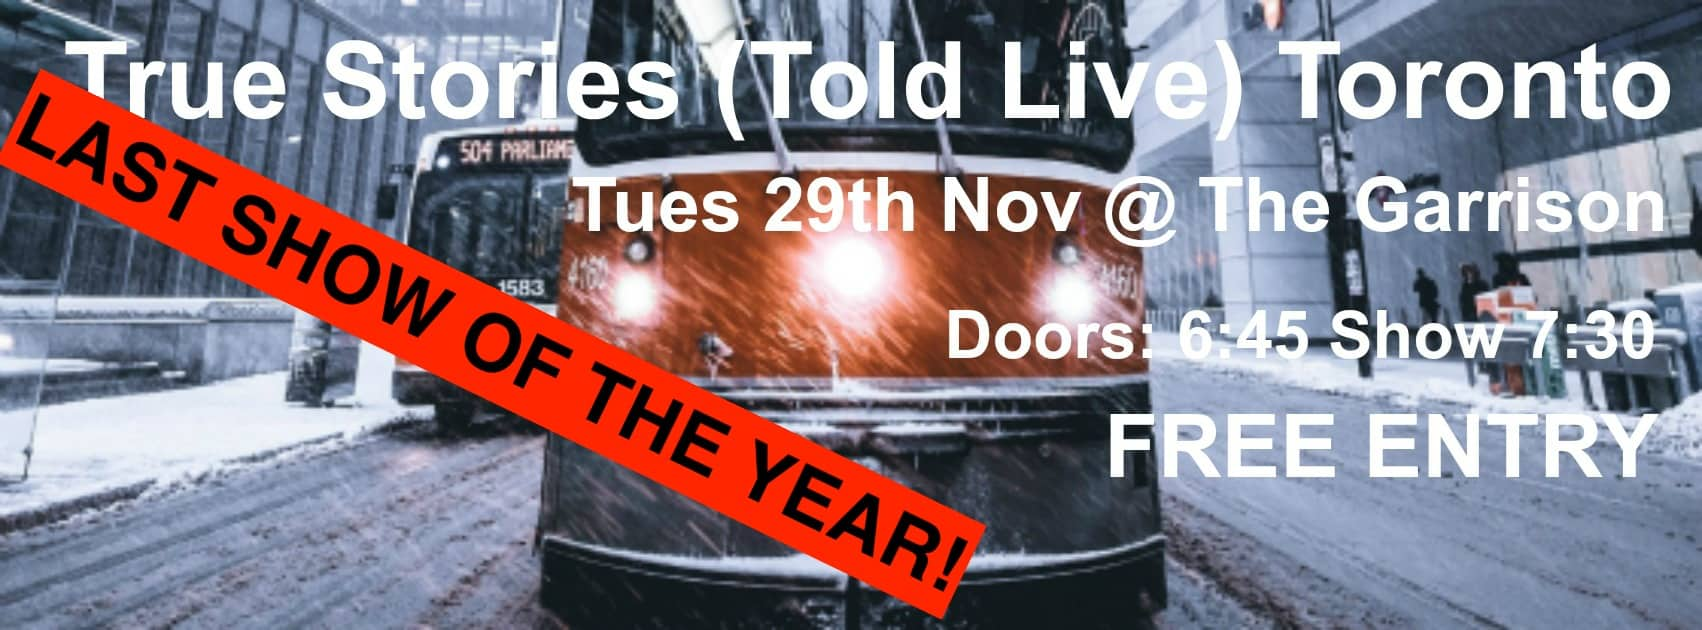 true-stories-told-live-tonight-at-the-ossington